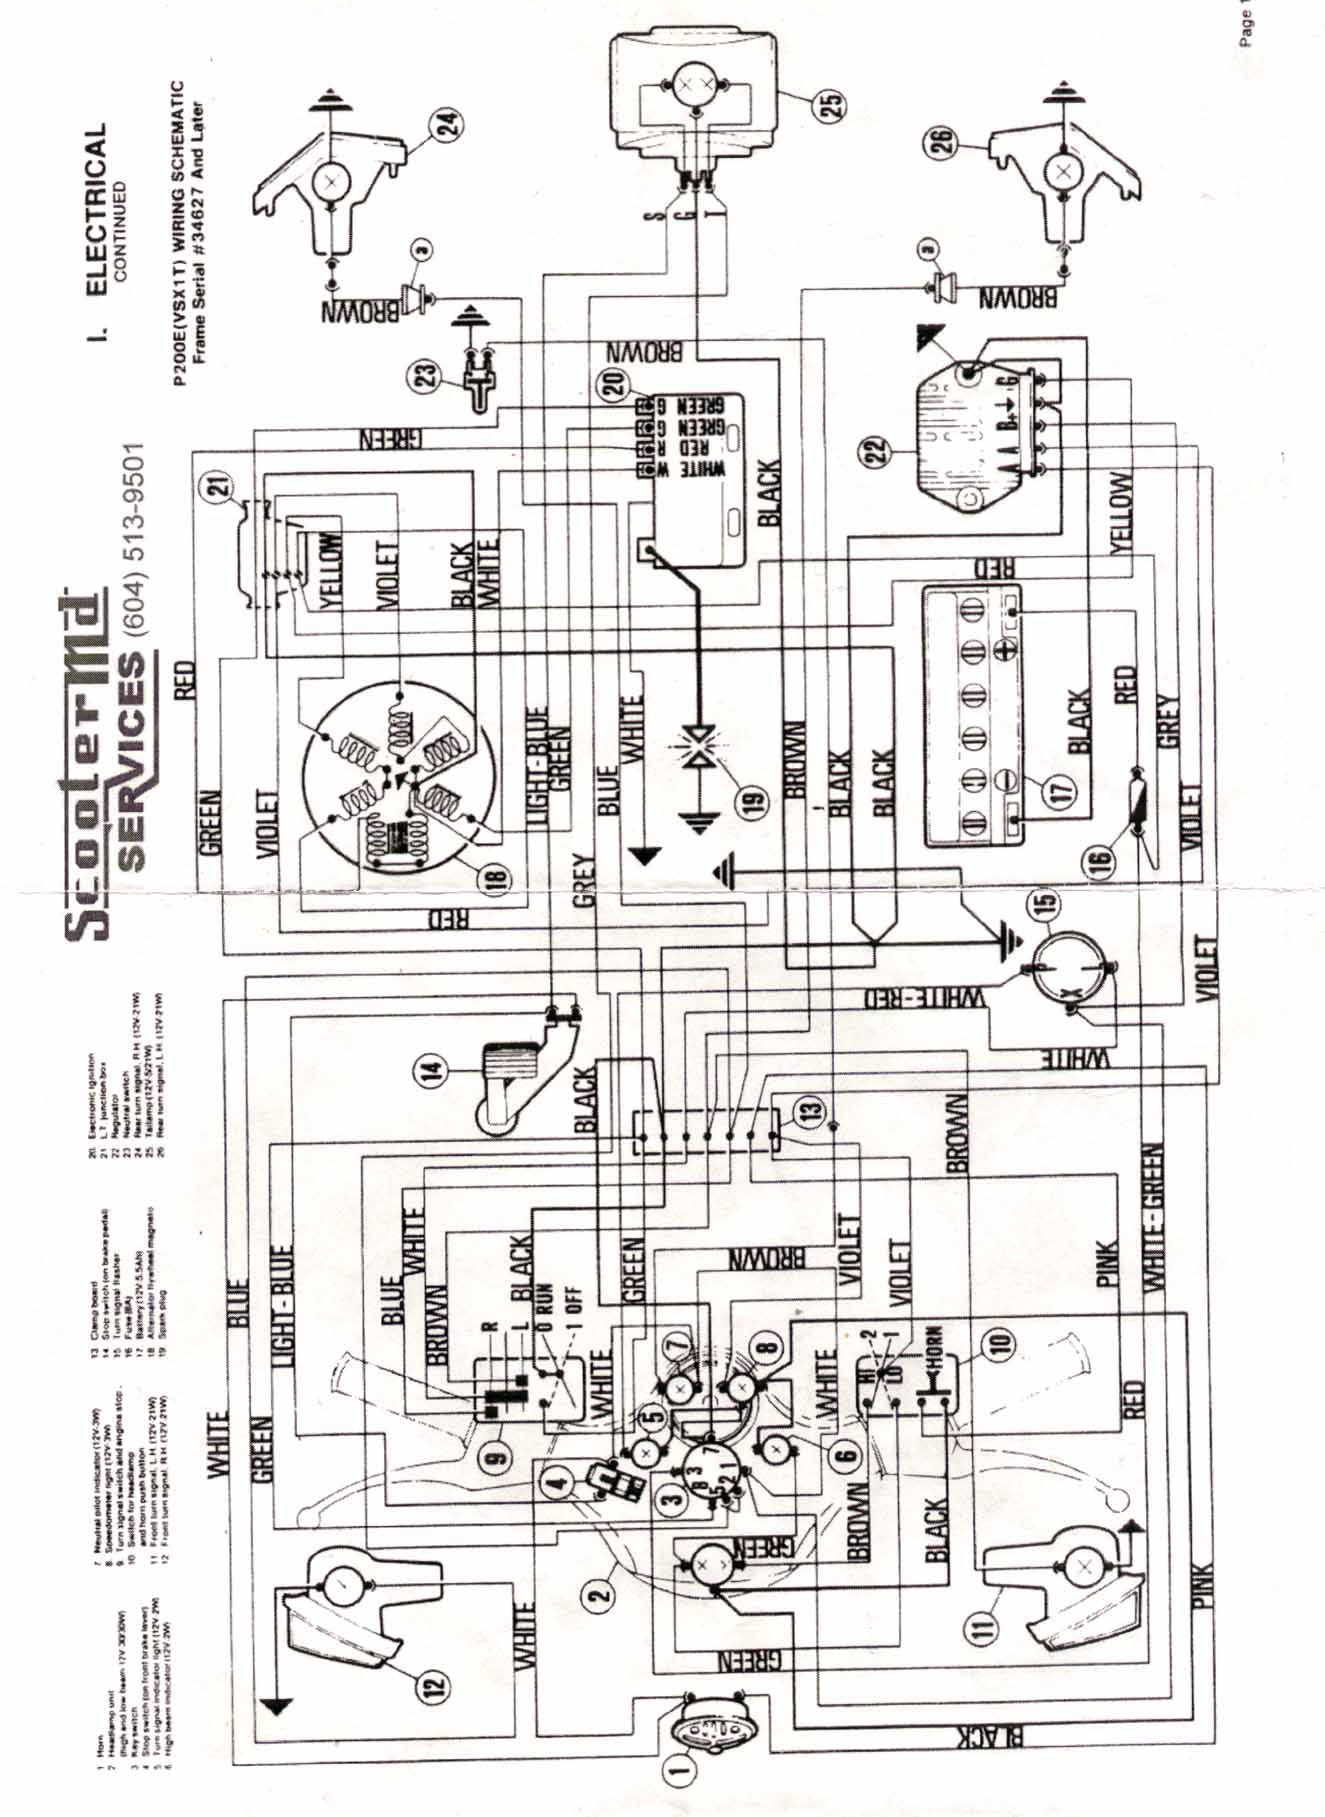 p200diag2 vespa p series maintenance & repair vespa p200 wiring diagram at bakdesigns.co